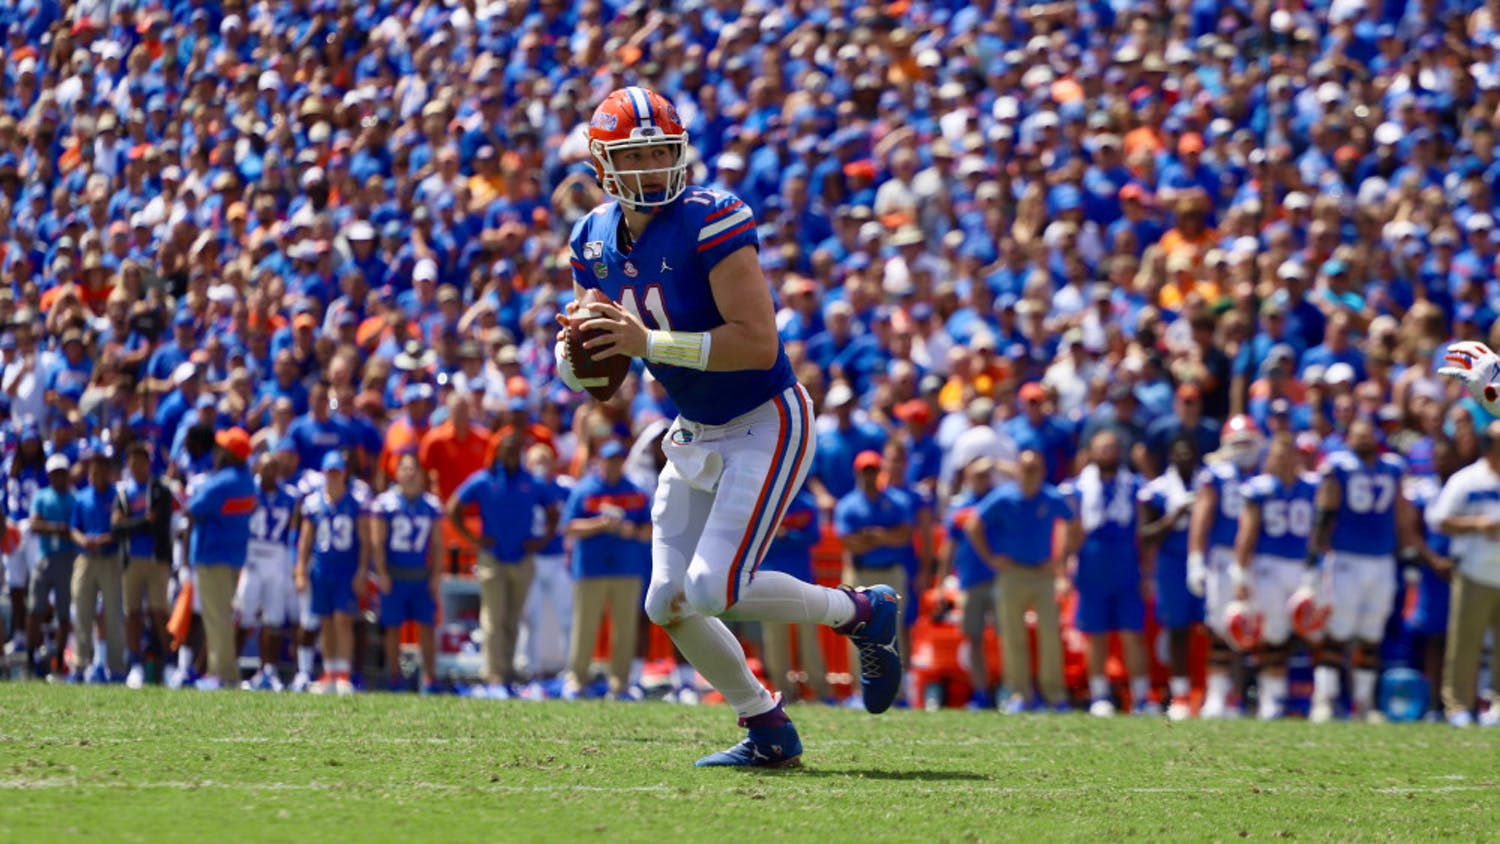 Quarterback Kyle Trask drops back in front of a packed crowdagainst Tennessee last season. This year, most SEC schools will cap their stadium capacities at about 20 to 25 percent.